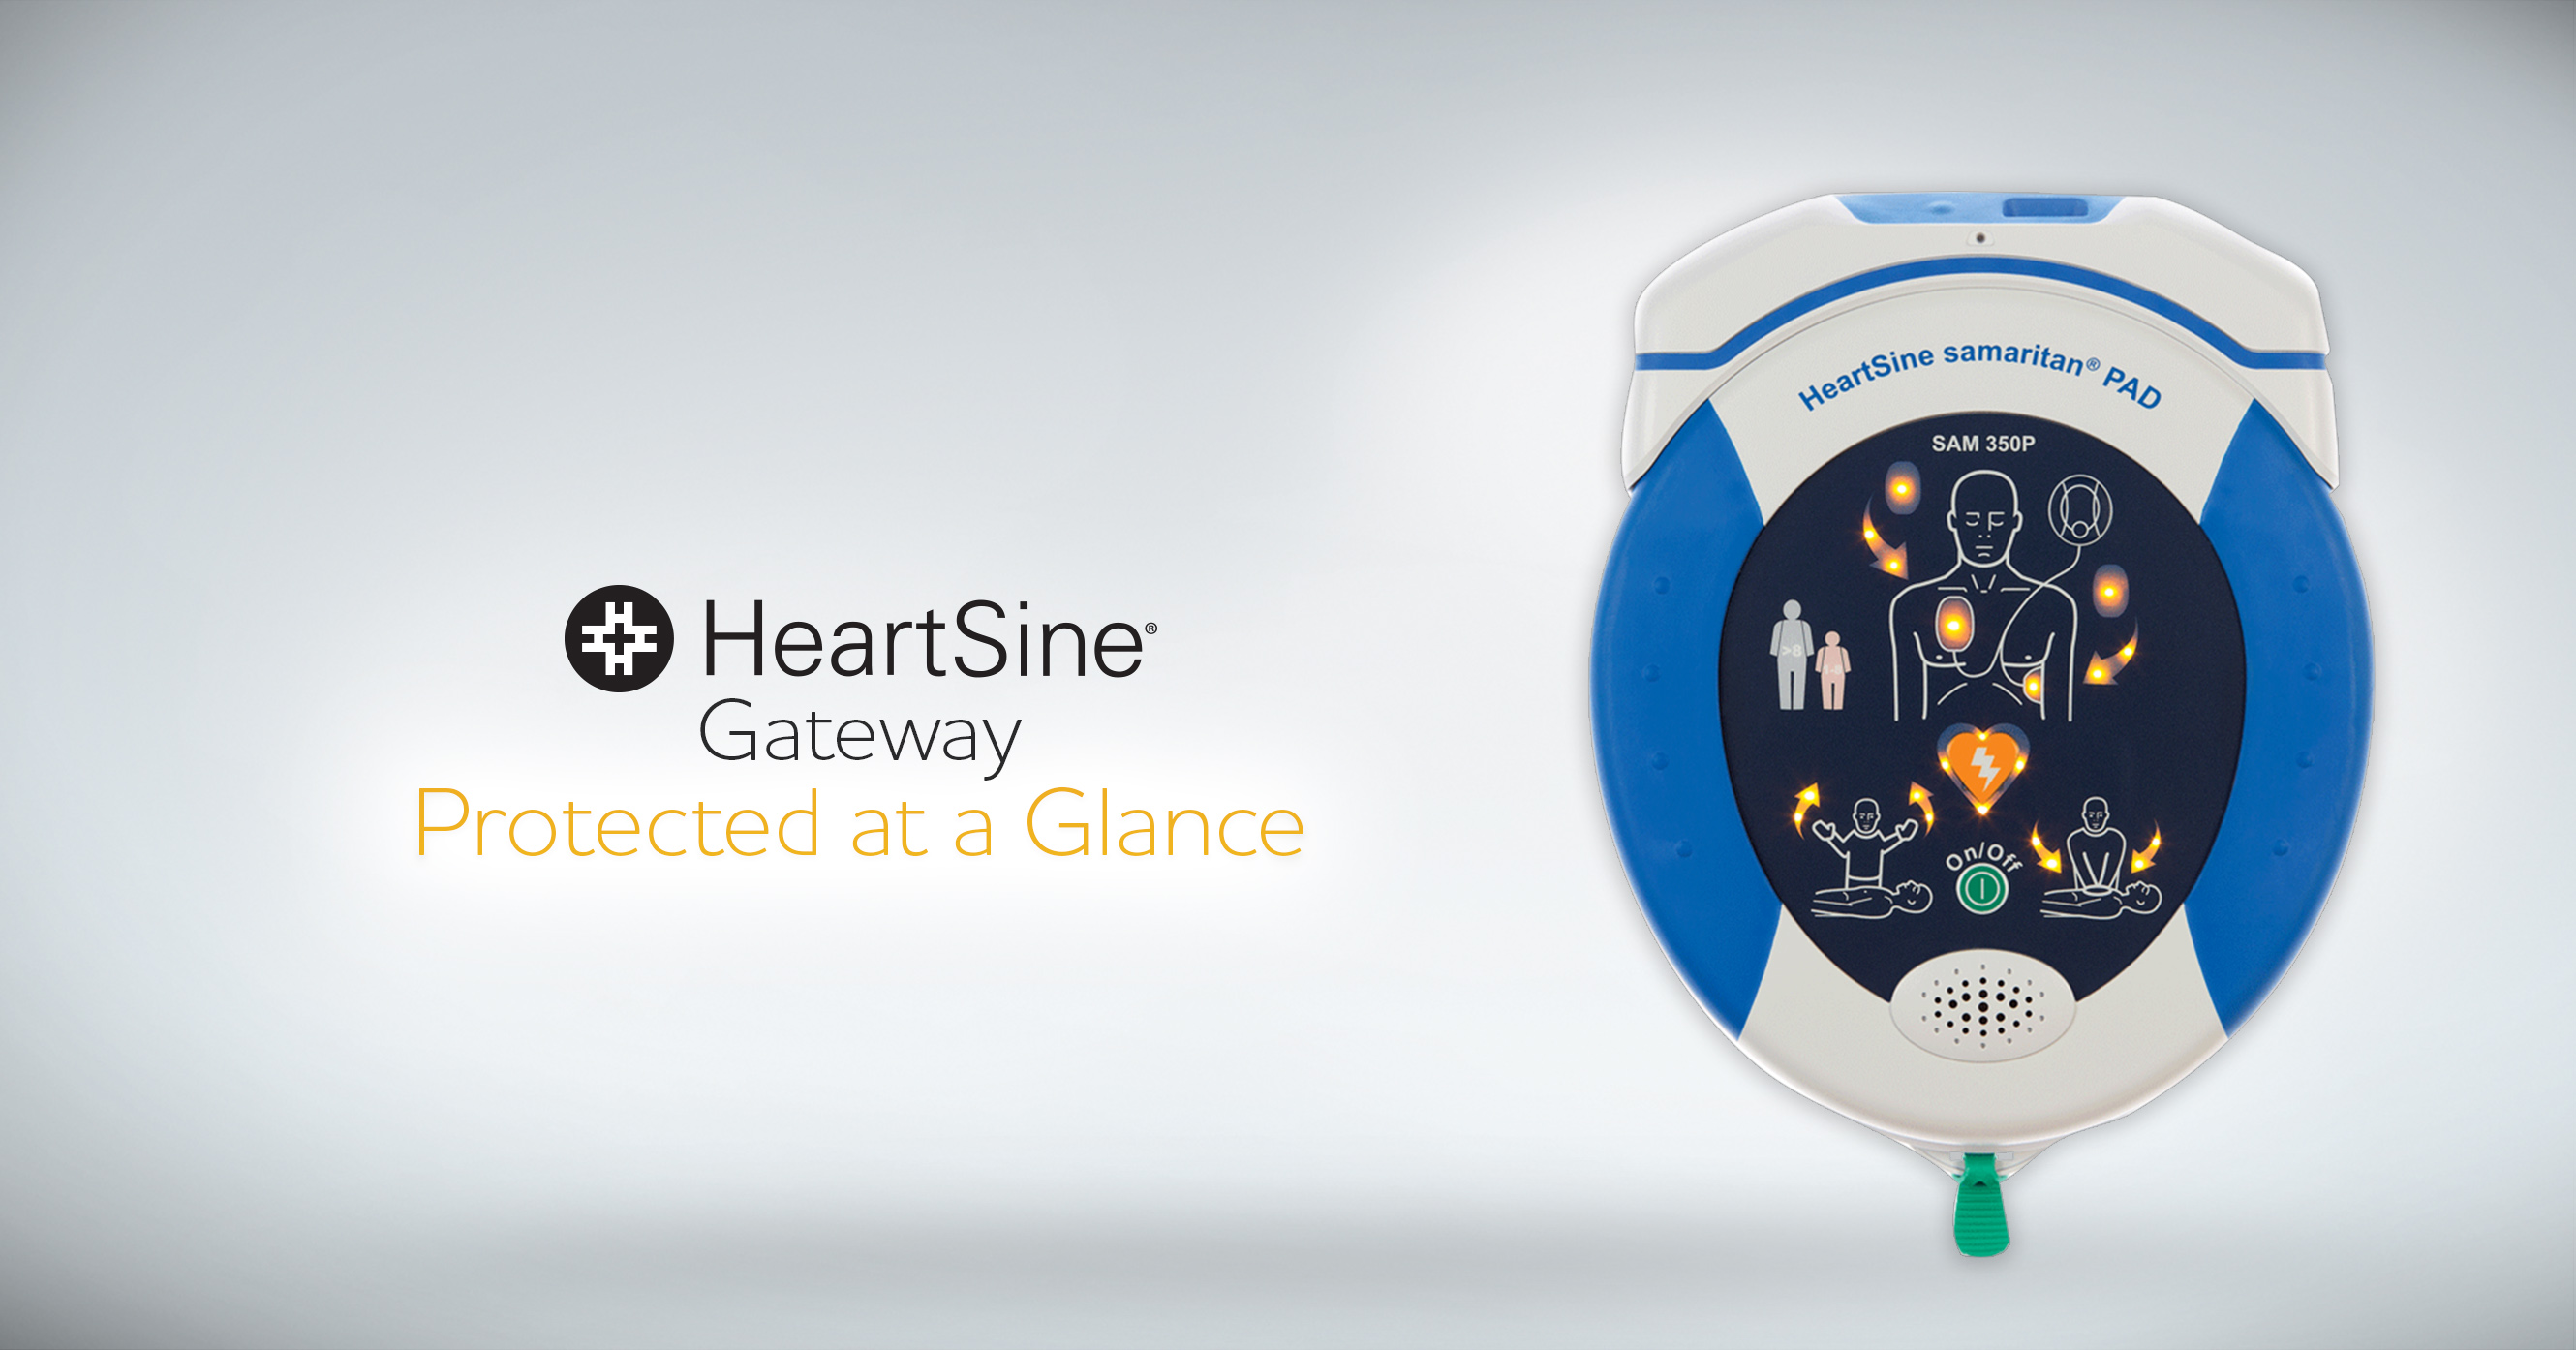 Heartsine AED with Gateway wifi adapter on top